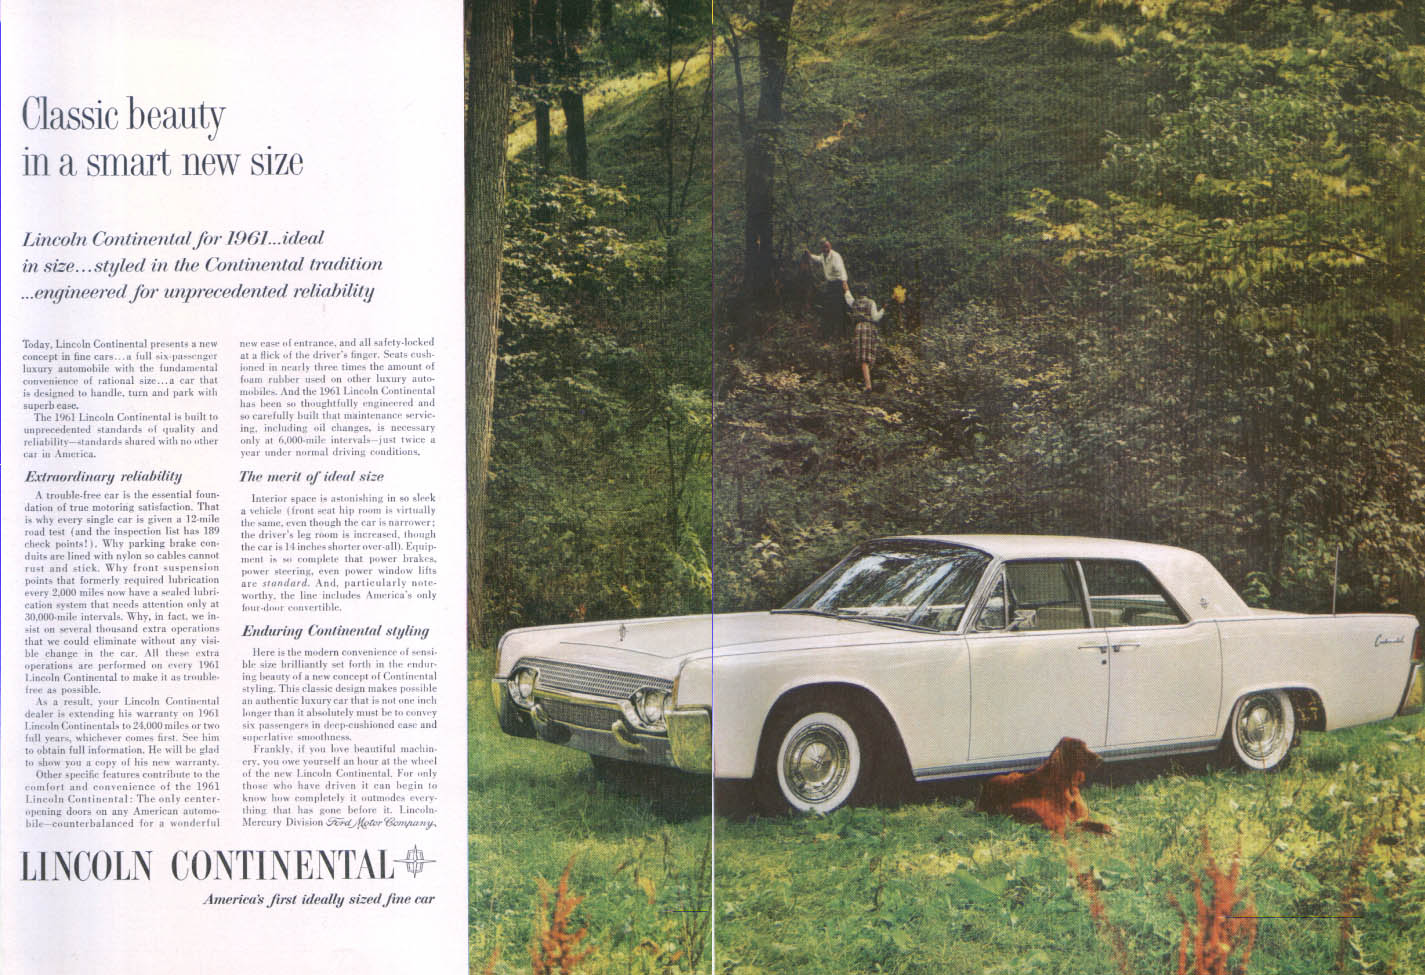 Image for Lincoln Continental classic beauty smart size ad 1961